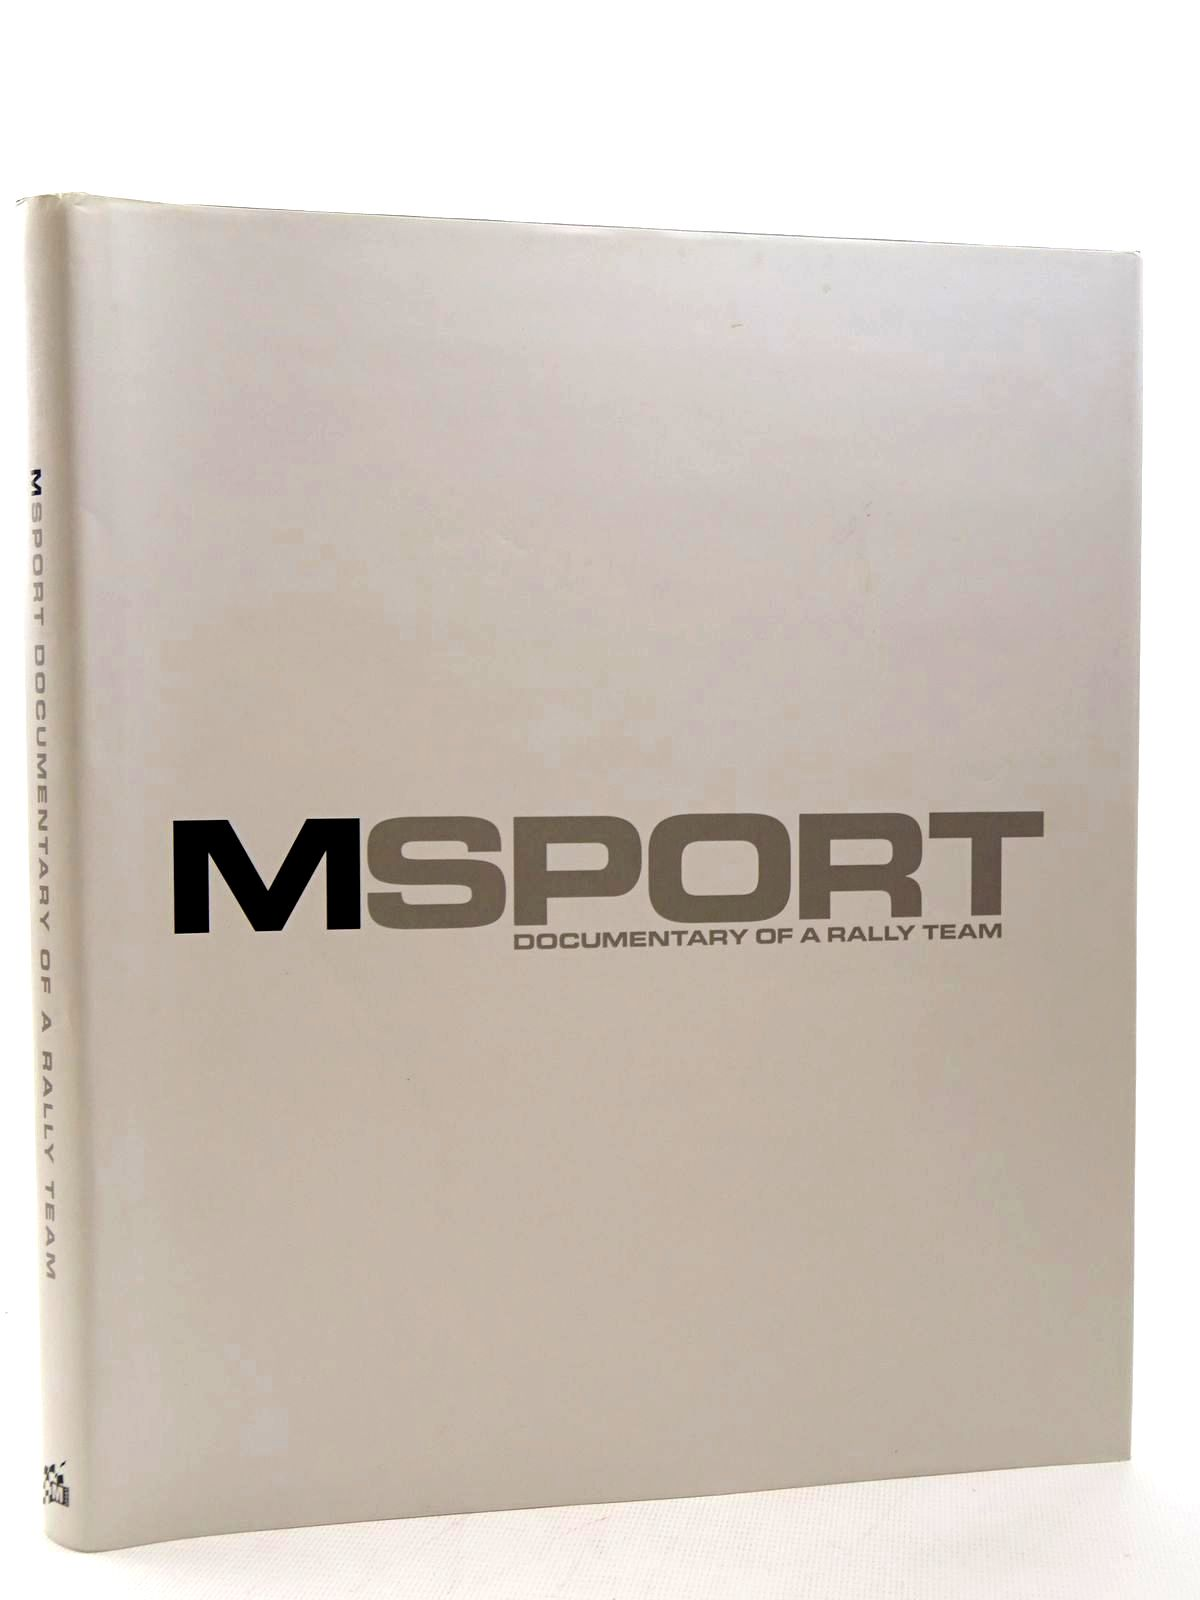 Photo of M-SPORT: DOCUMENTARY OF A RALLY TEAM written by Wilson, Malcolm published by M-Sport Ltd (STOCK CODE: 1815983)  for sale by Stella & Rose's Books